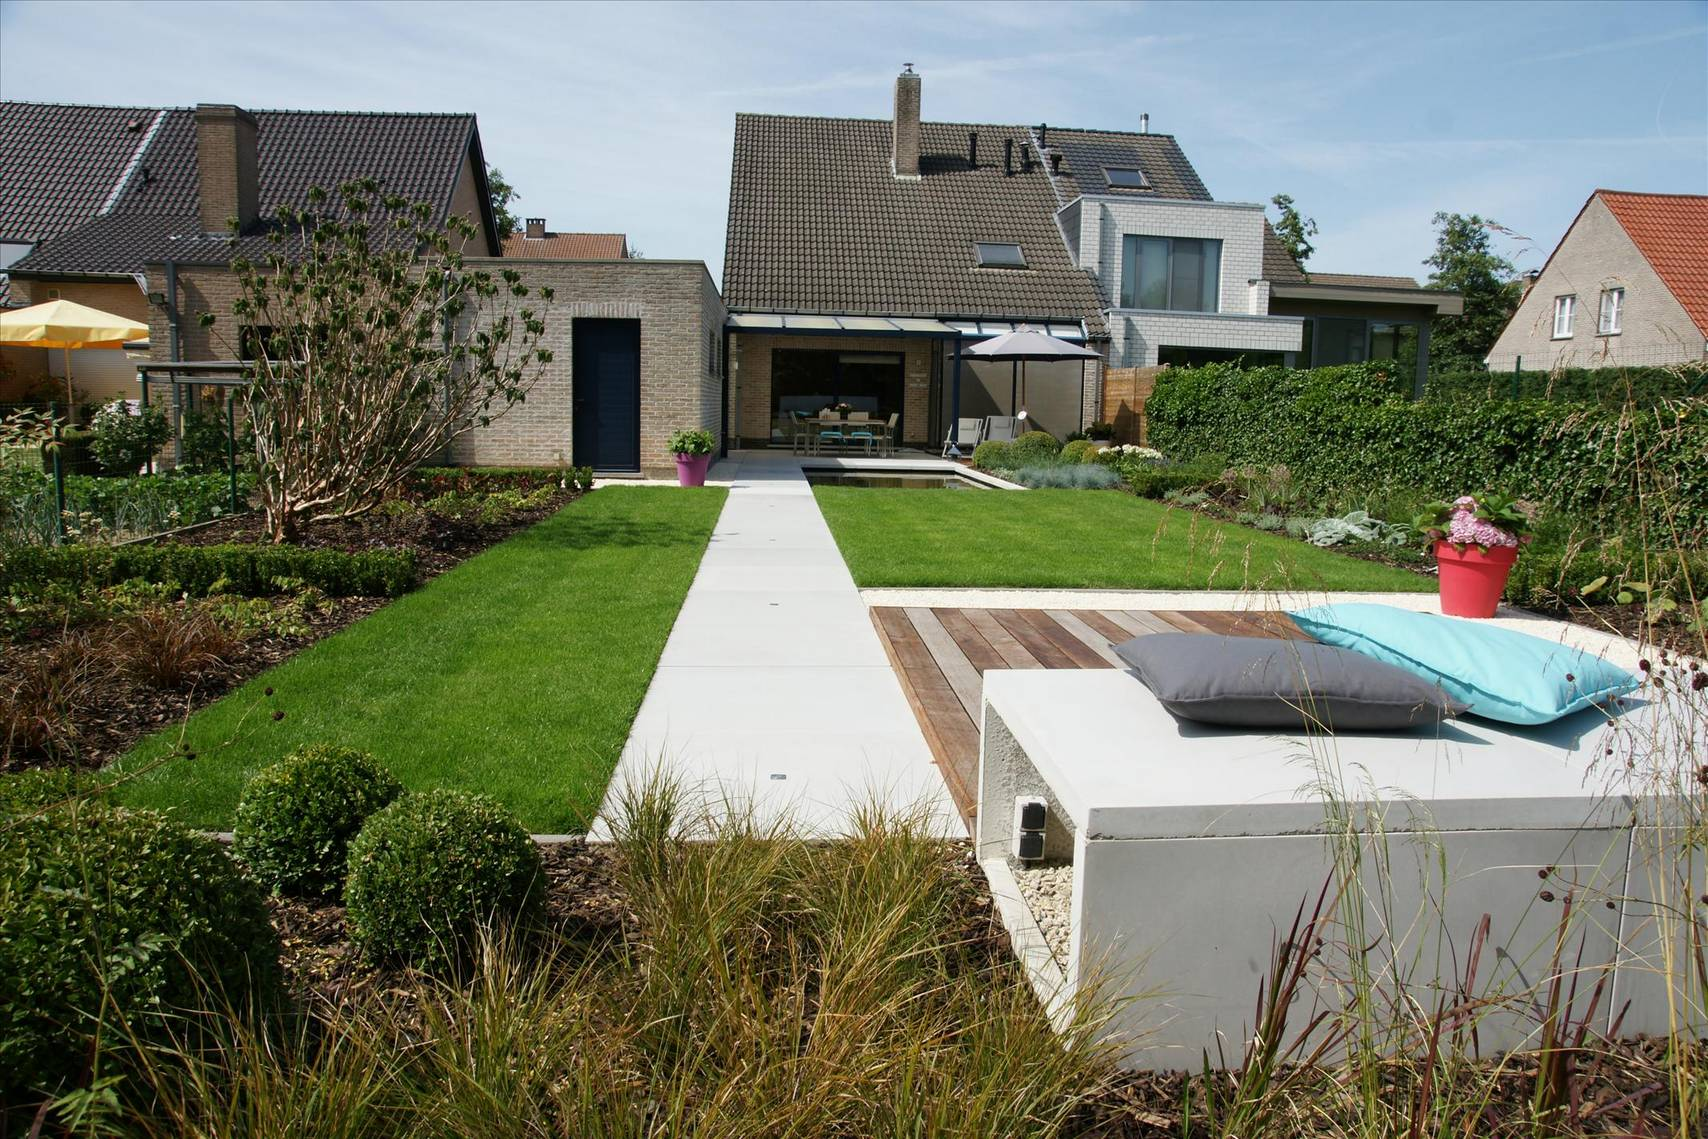 Eco tuinarchitectengroep projecten moderne lounge tuin for Tuin modern design